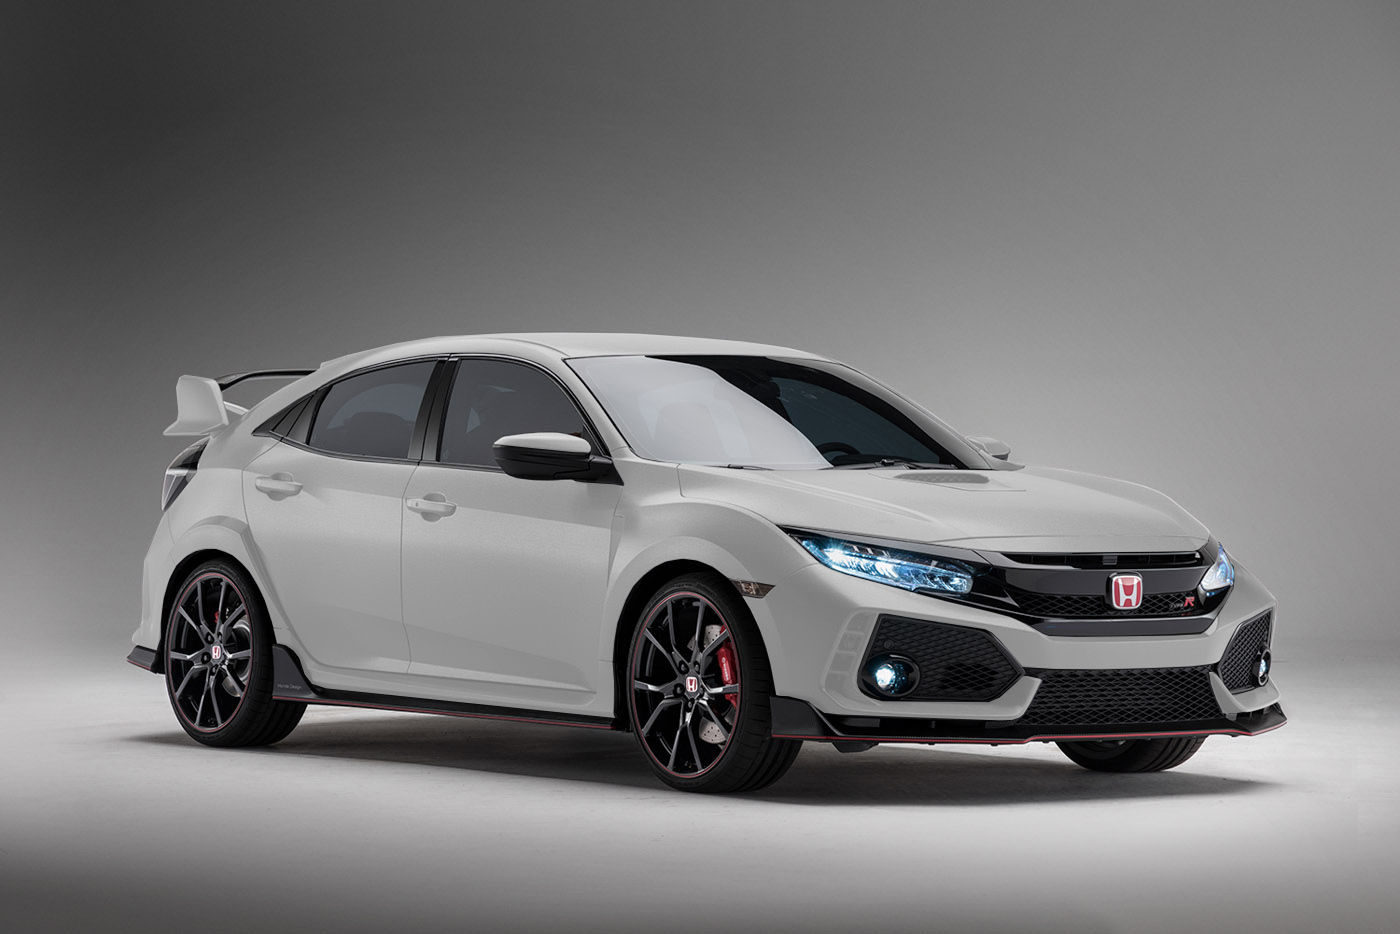 civic type r previewed in more colors 2016 honda civic. Black Bedroom Furniture Sets. Home Design Ideas